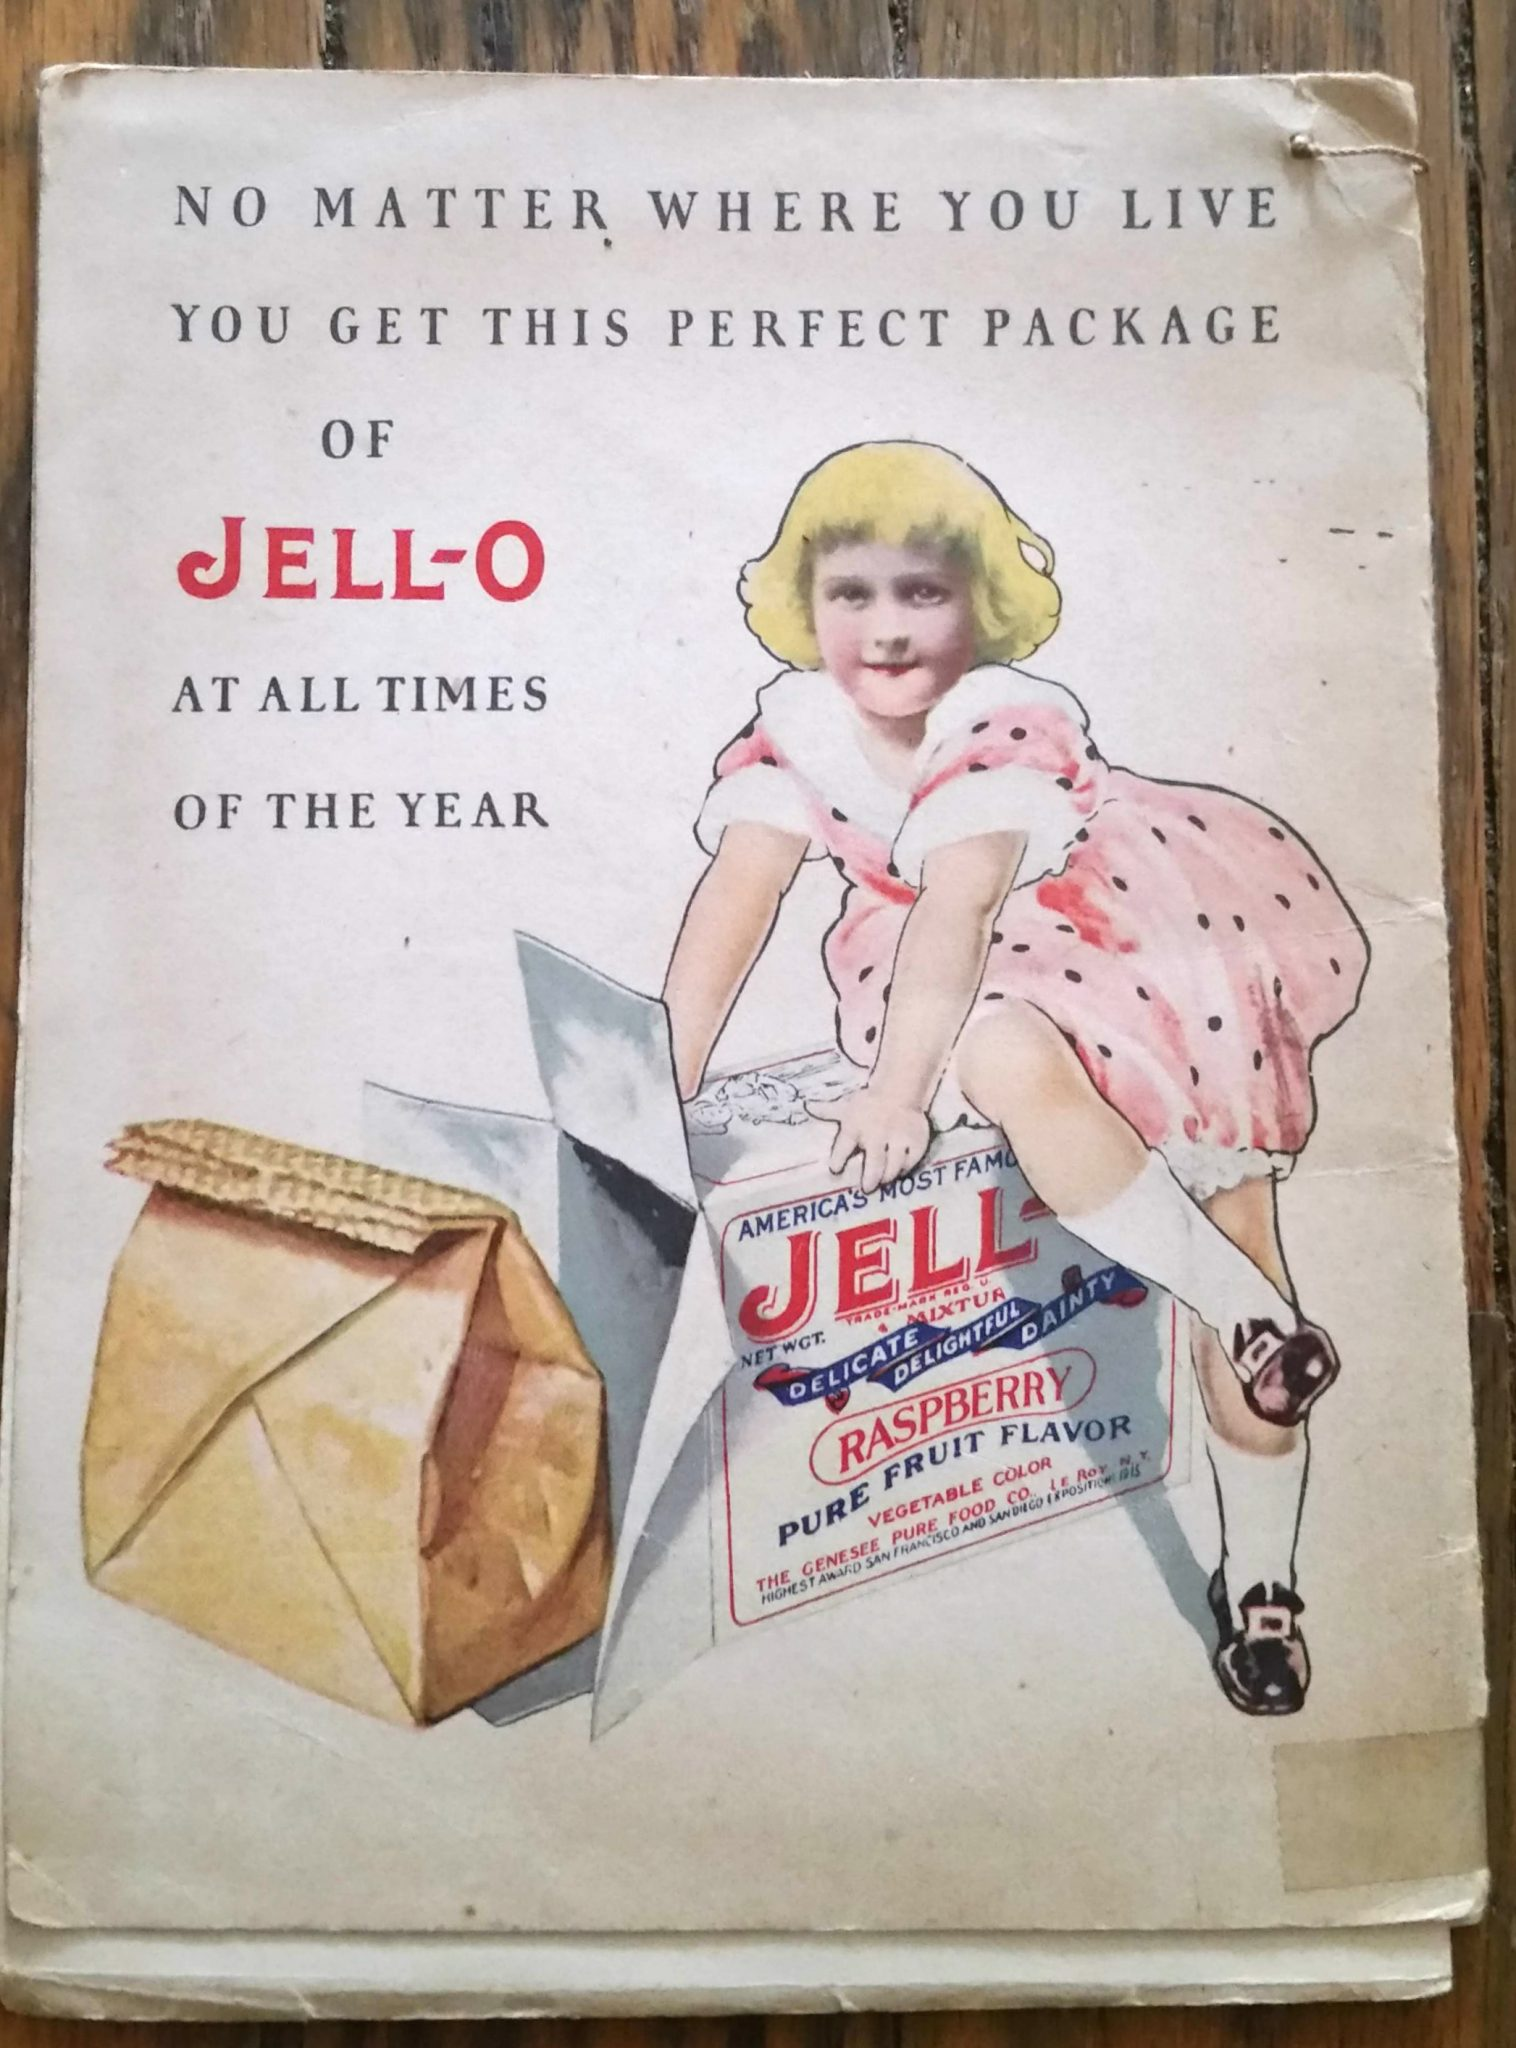 Back cover illustration from a vintage jello cookbook